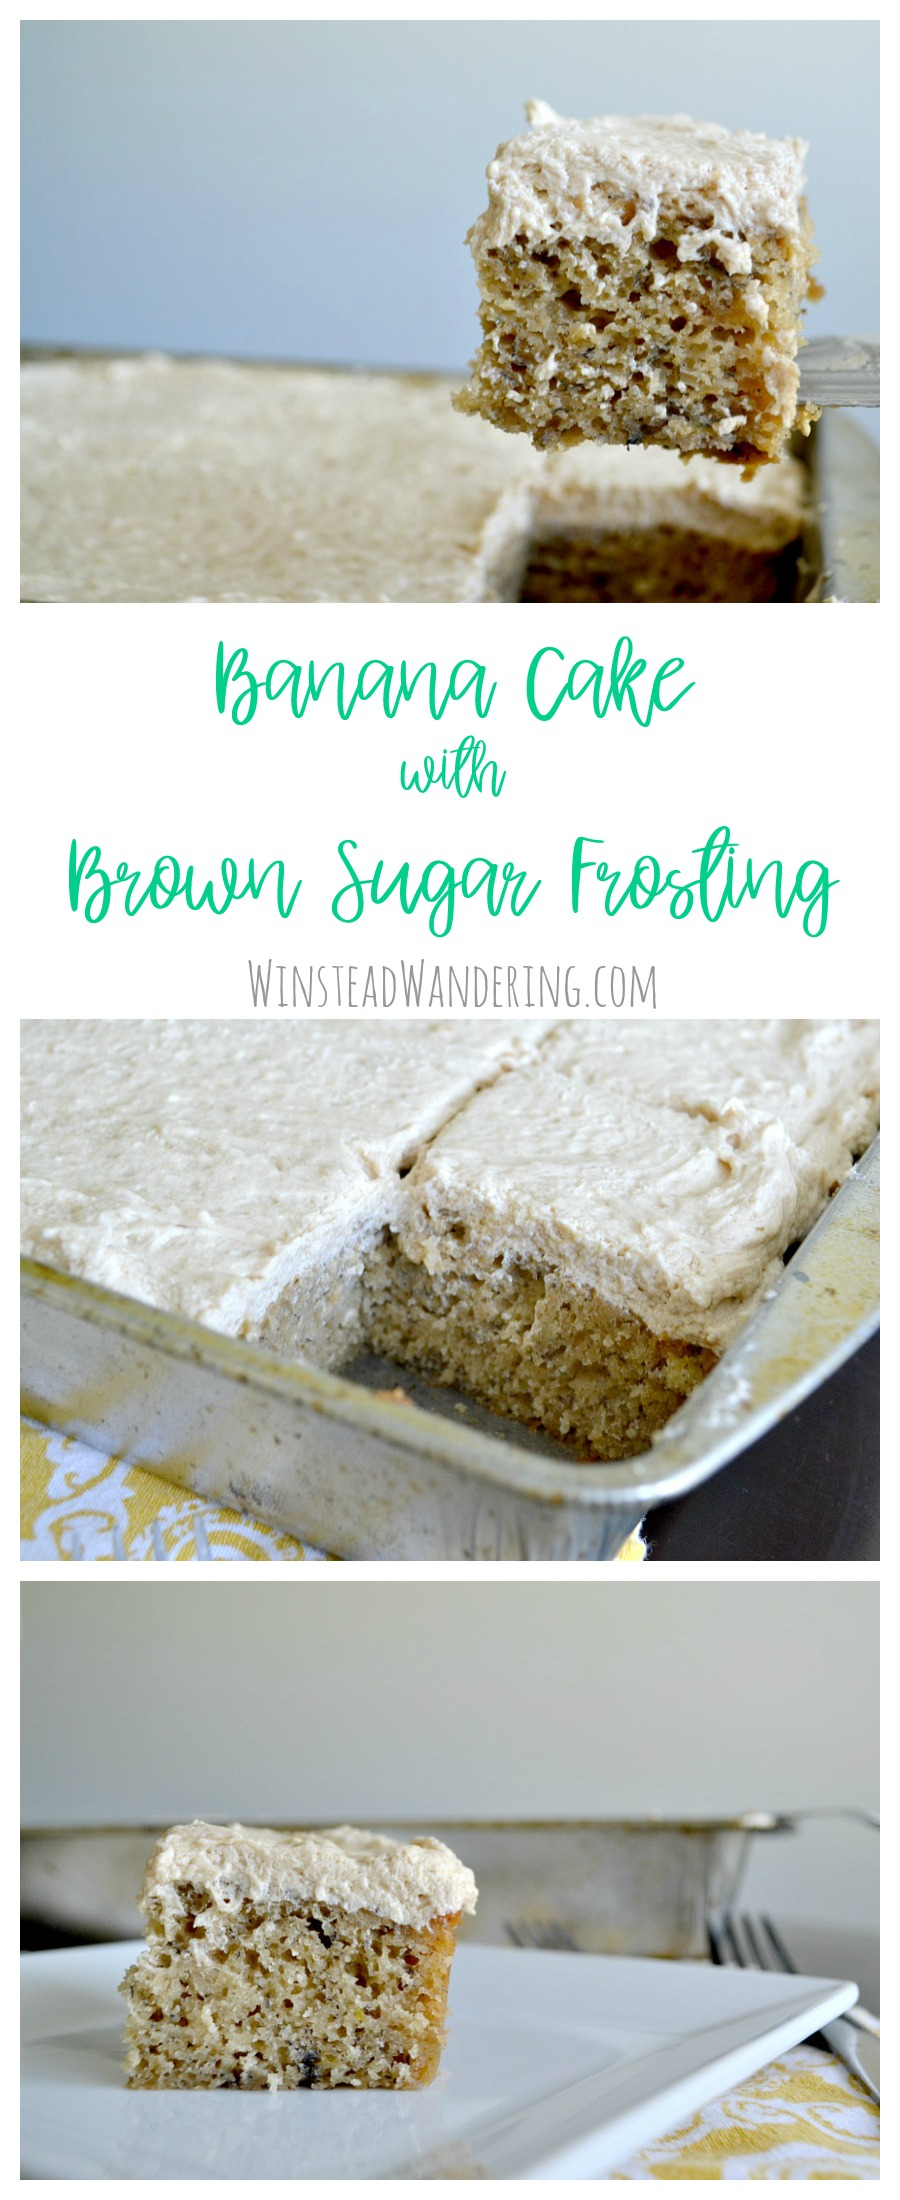 Forget boring banana bread; put those overripe bananas to good use by making this moist and perfectly-sweet Banana Cake with Brown Sugar Frosting.